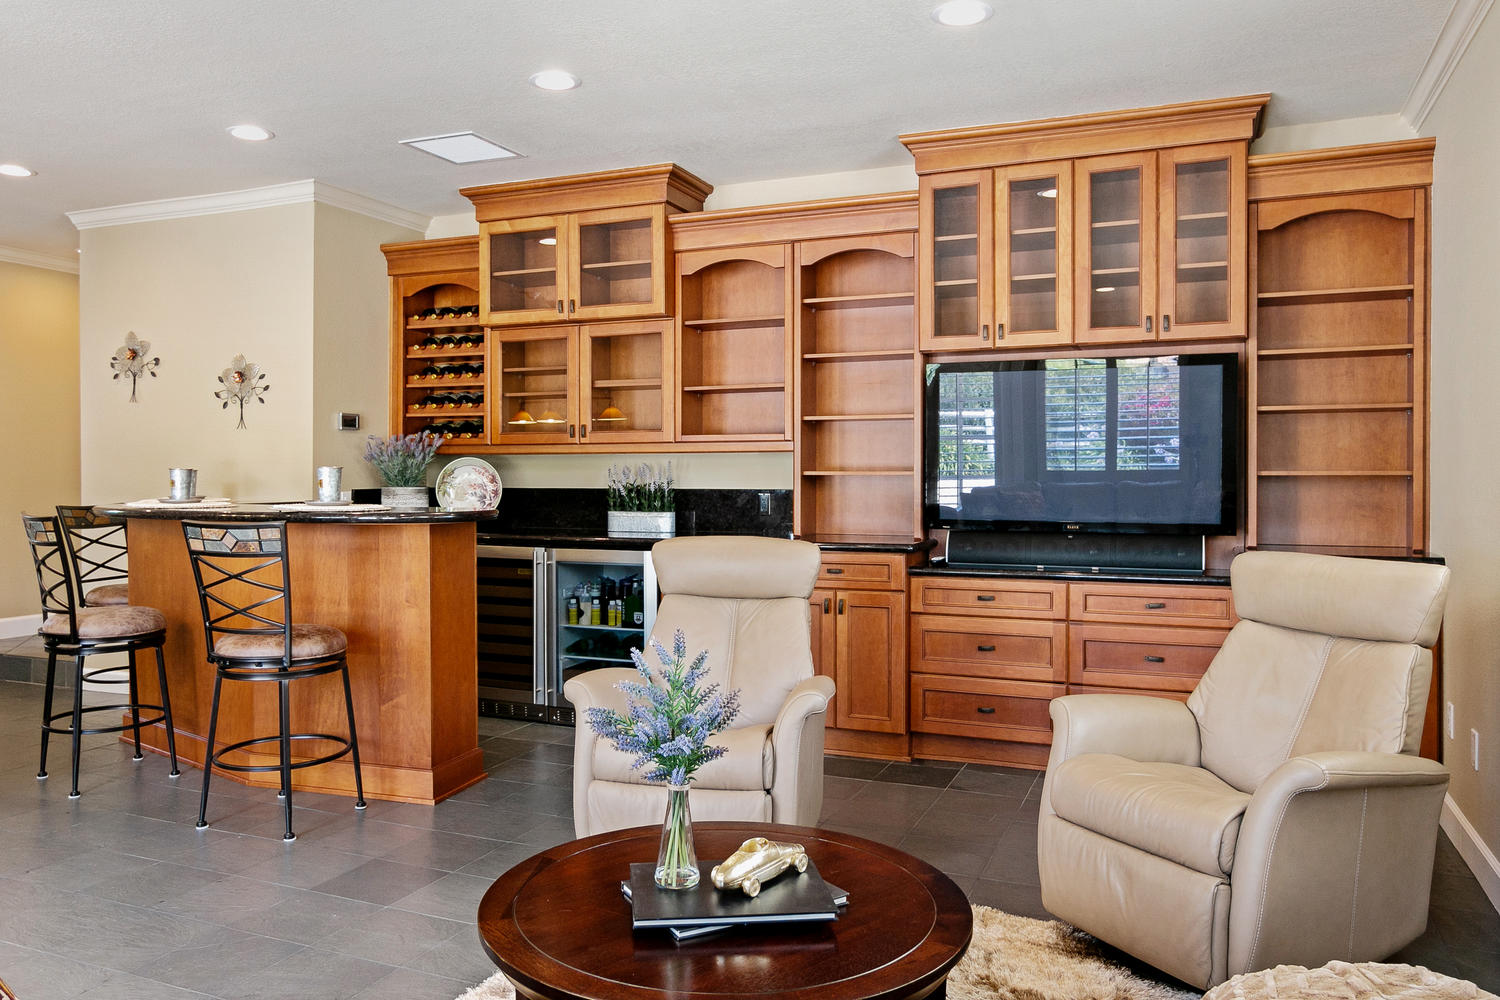 6884 Aviano Dr-021-009-Game RoomWet Bar-MLS_Size.jpg